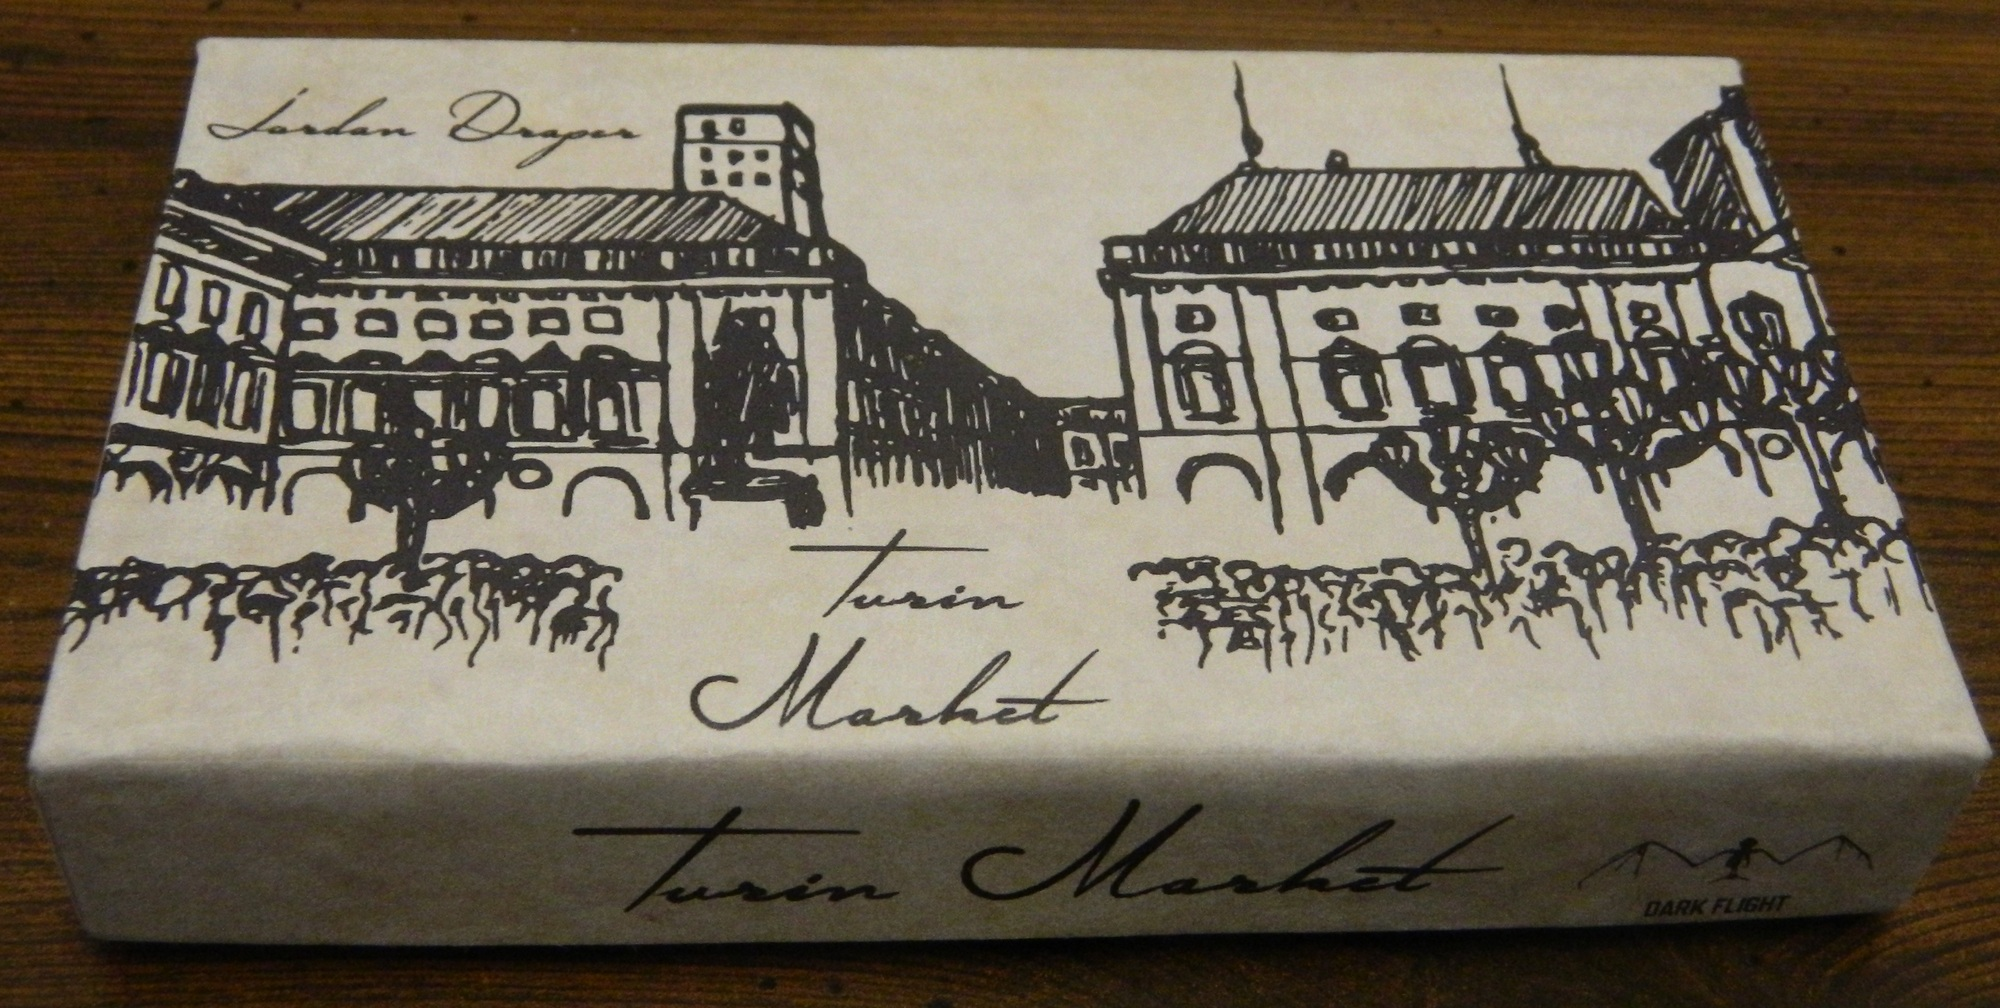 Box for Turin Market